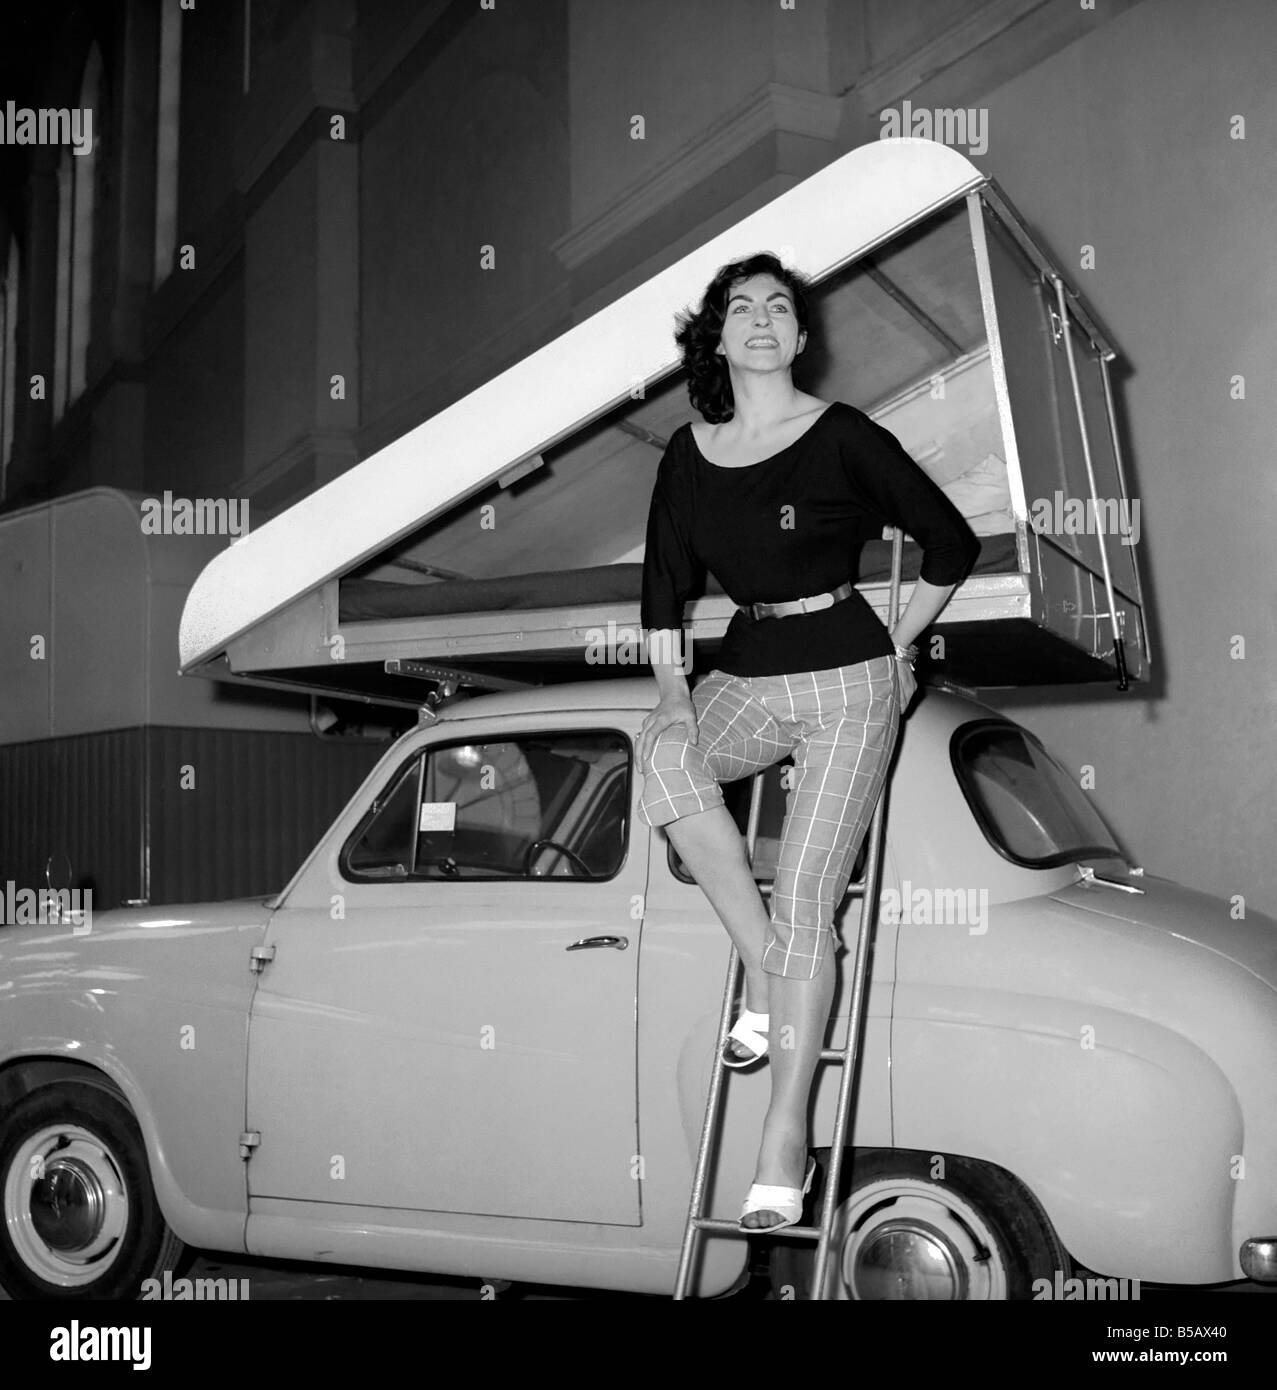 "Inventions: Car Roof Tent: A new revolutionary camping invention ""The Roof Tent"" seen here on top of a Austin A40. Stock Photo"